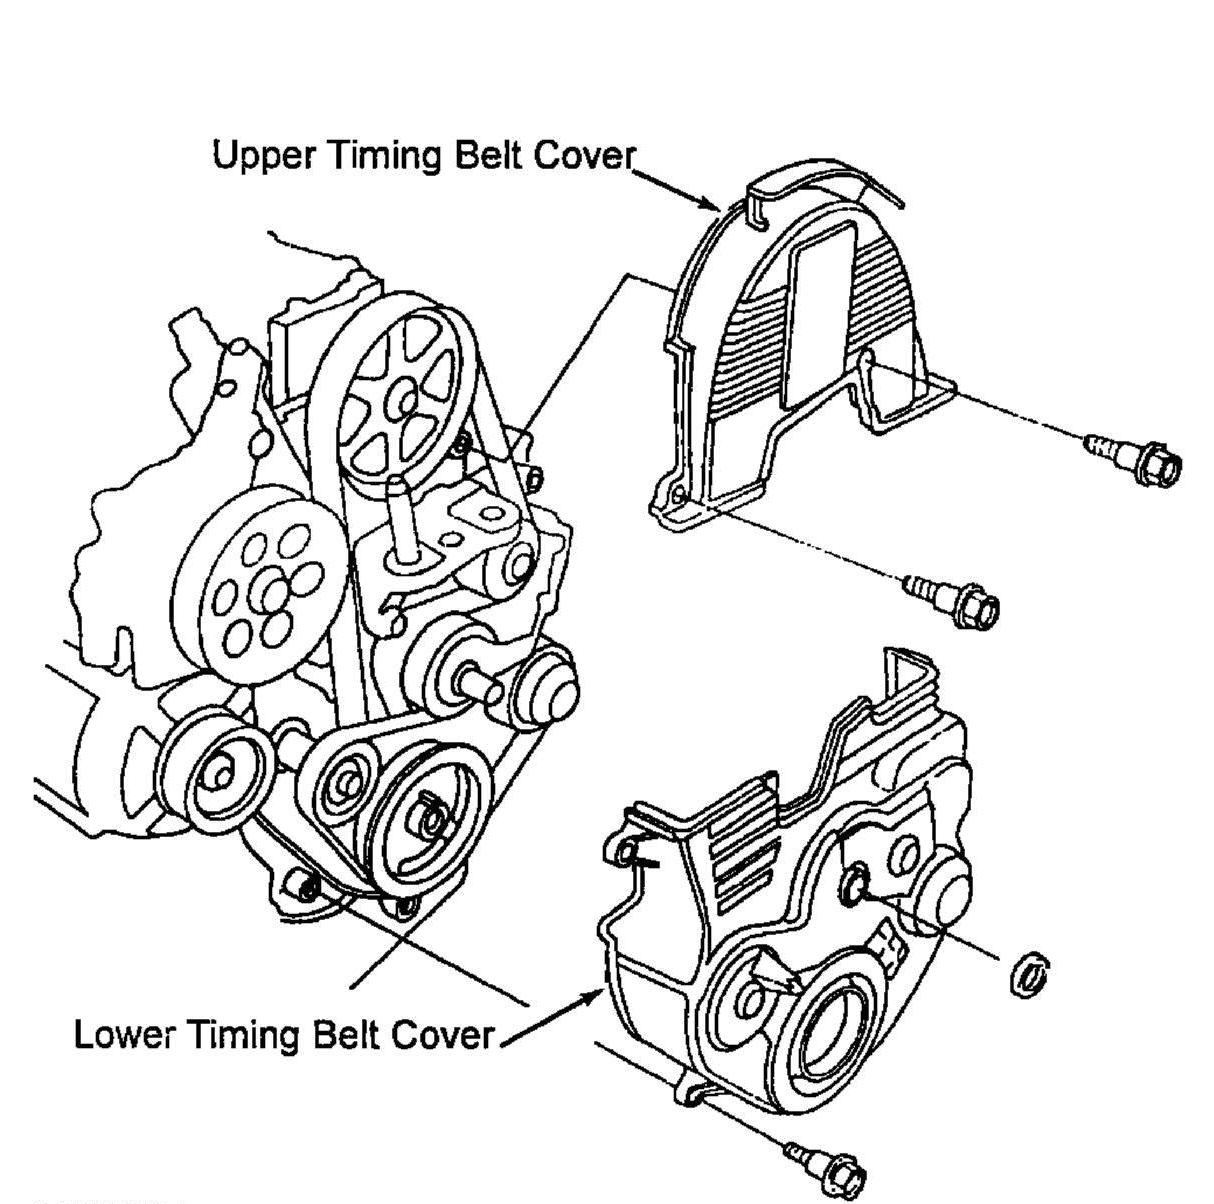 459345 Air Fuel Ratio Sensor Non Harness Part Available in addition 5nku6 Diagram Timing Marks Aux Belt furthermore Camry 3 5l V6 Engine Diagram likewise Front suspension  ponents diagram besides 1993 Cadillac Deville Air Cond Heat System. on 1996 toyota avalon engine diagram